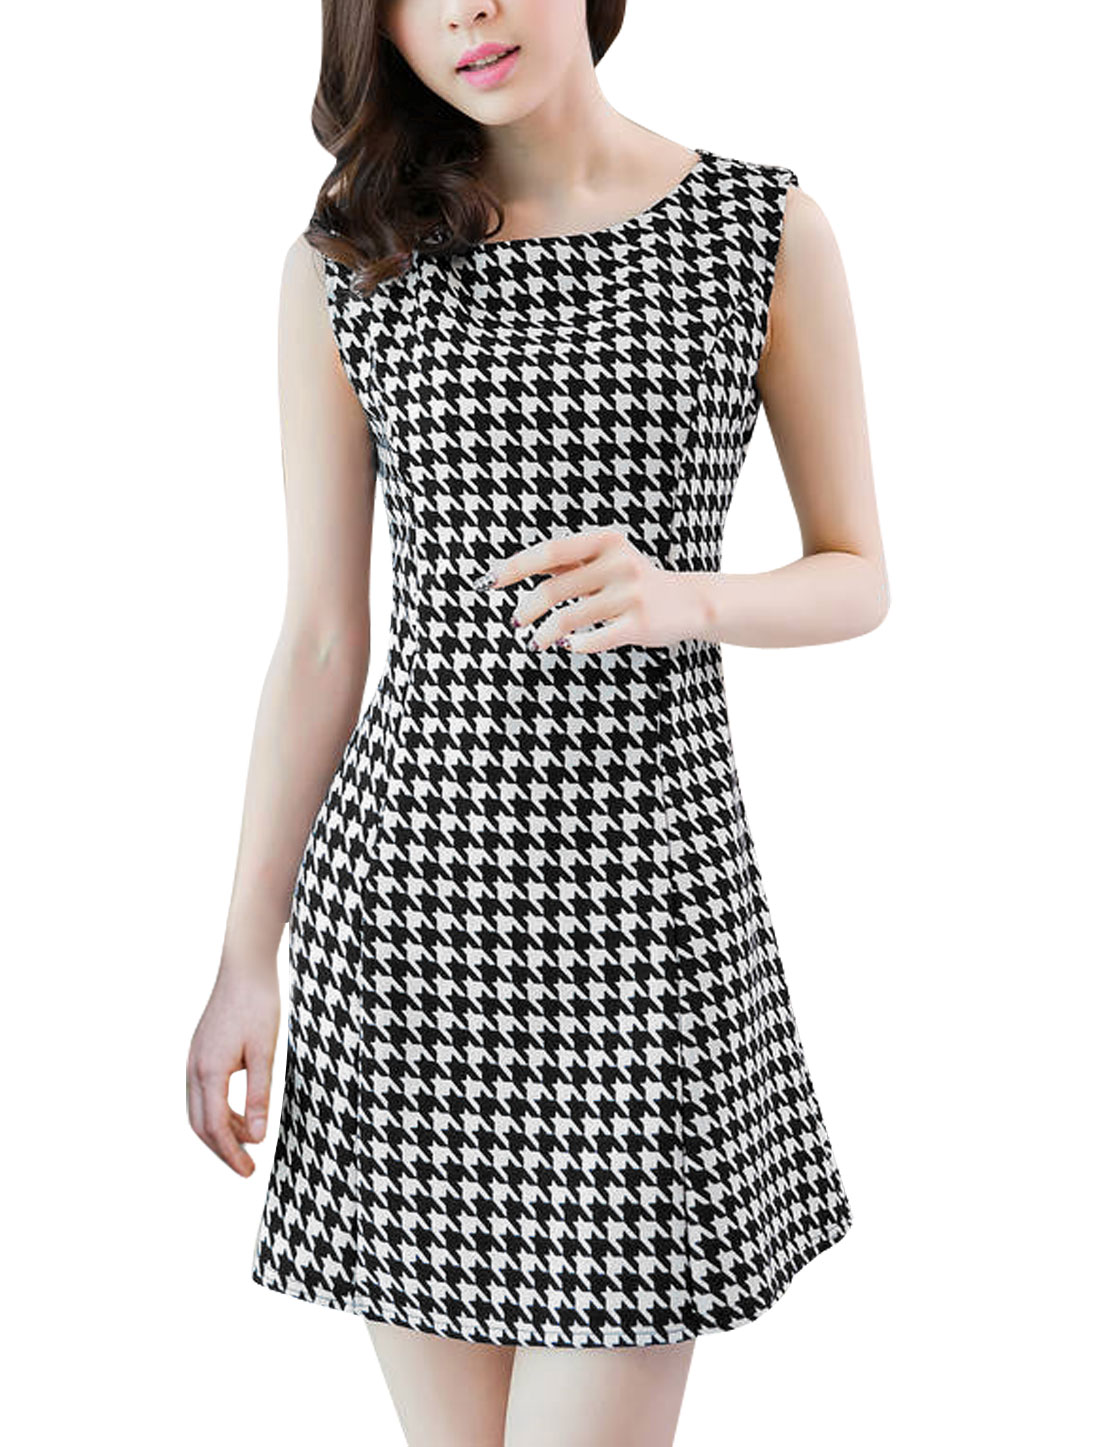 Women Fashion All Over Houndstooth Print Unlined Tank Dress Black White S